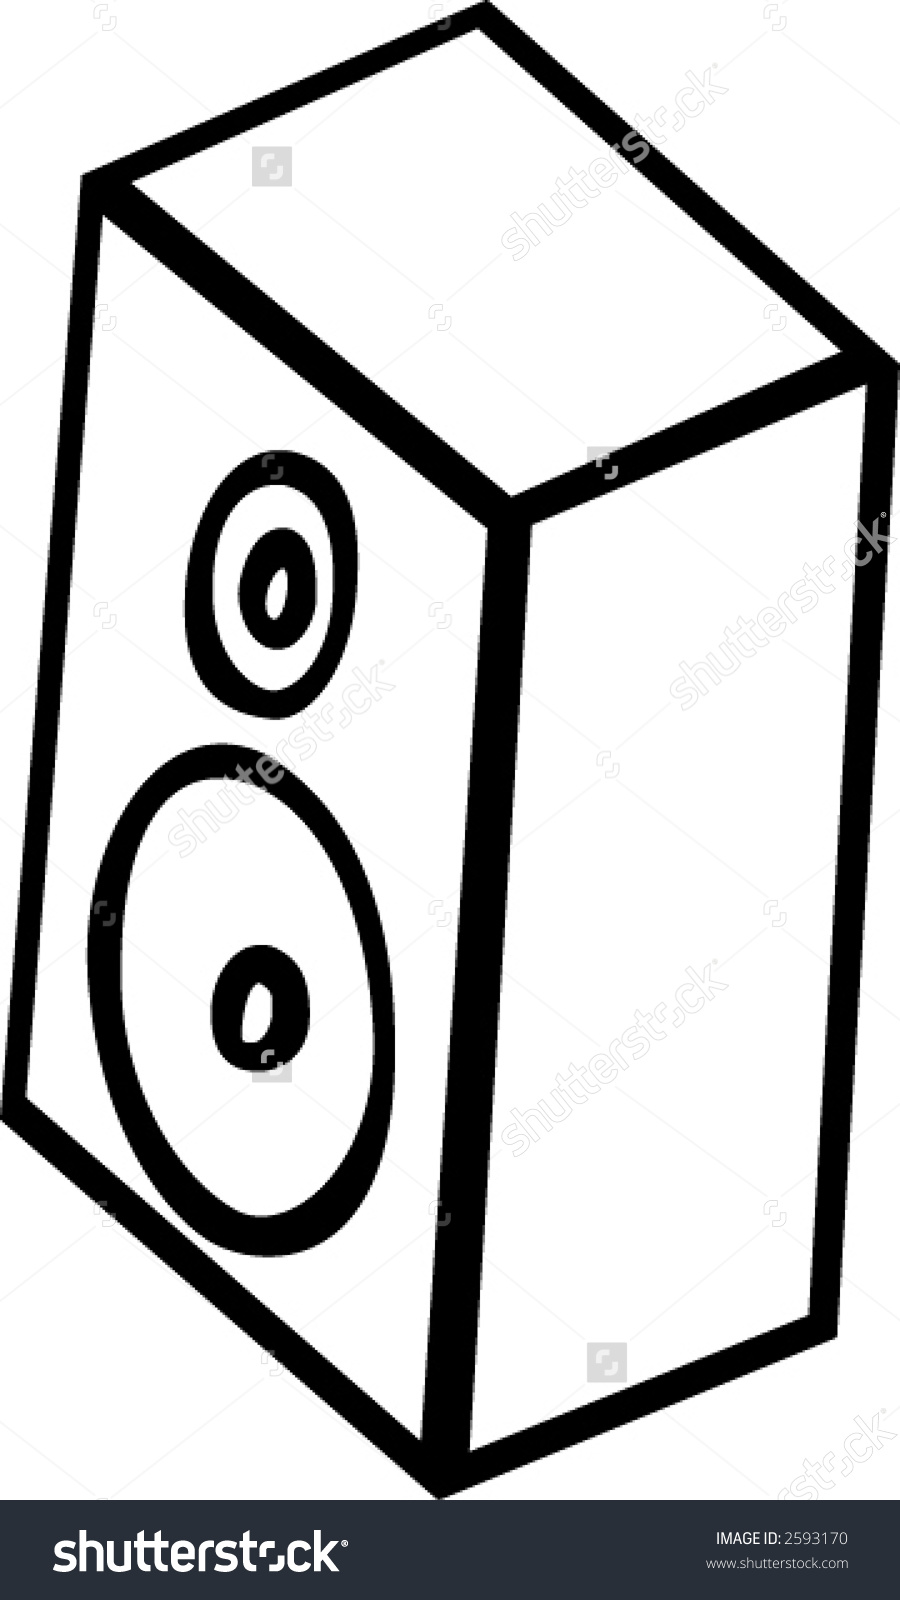 Speaker Cabinet Stock Vector Illustration 2593170 : Shutterstock.